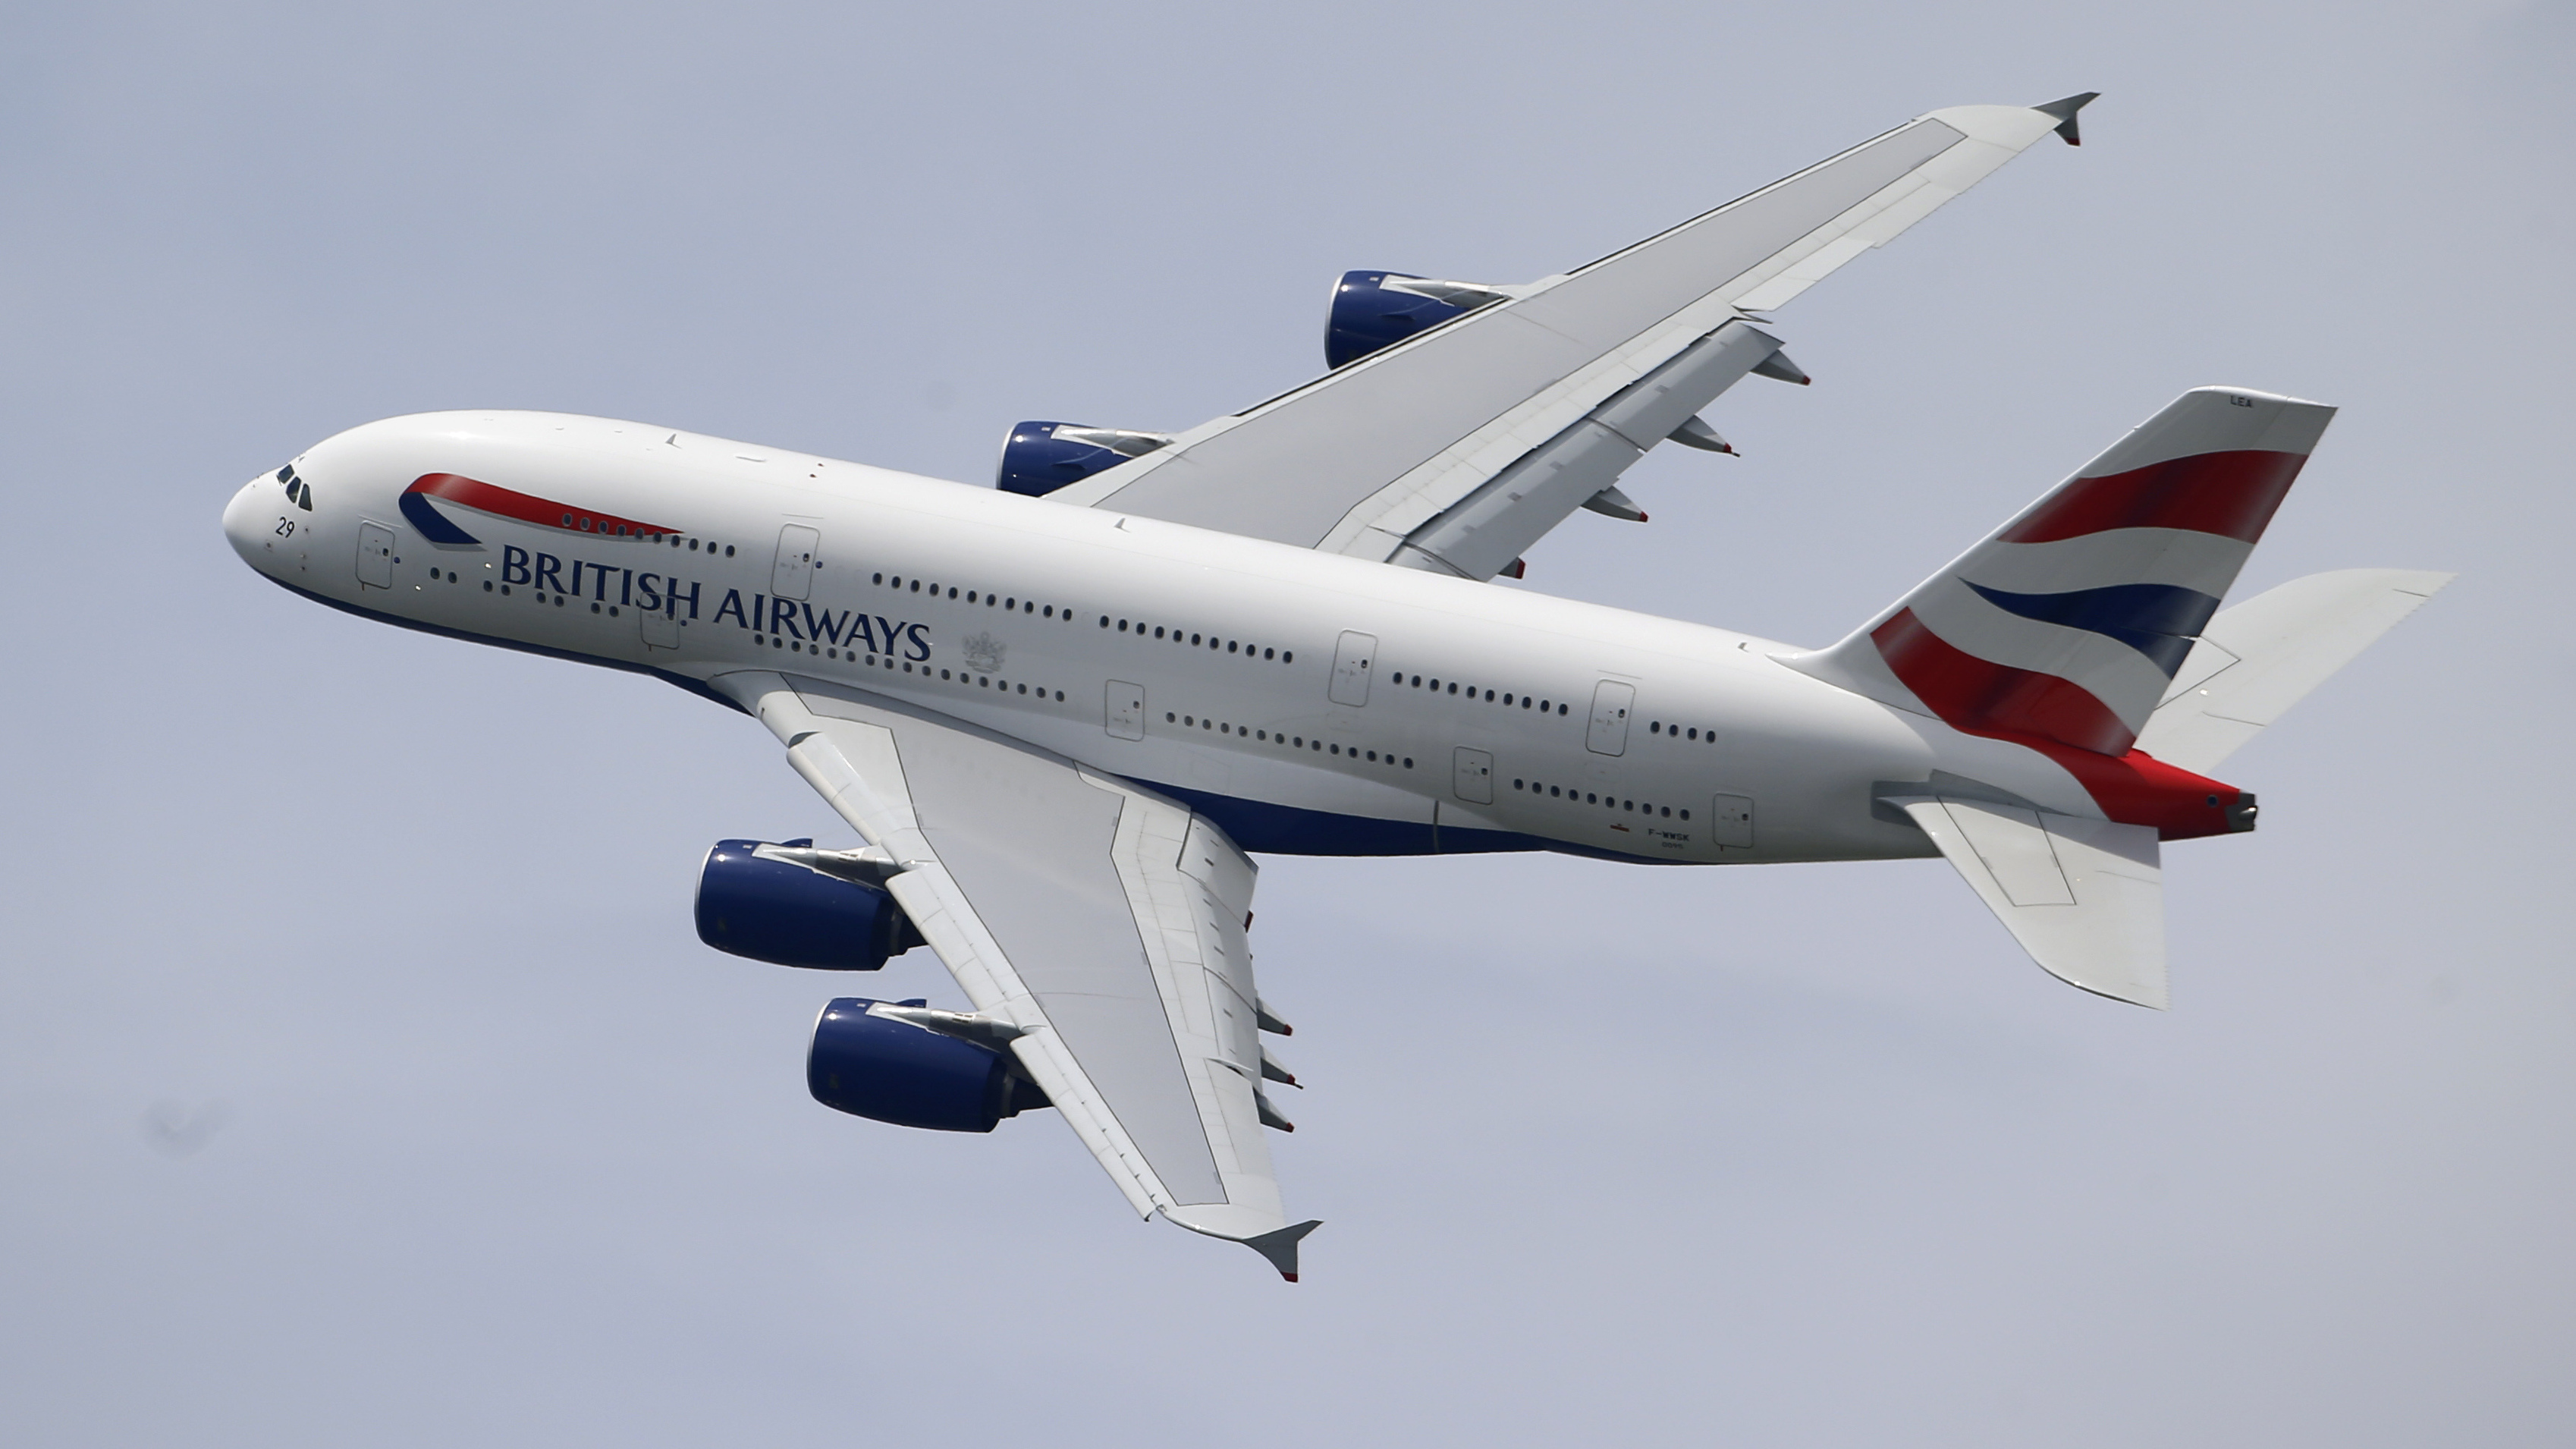 Airliner Hit By Suspected Drone On Way To Landing At London's Heathrow